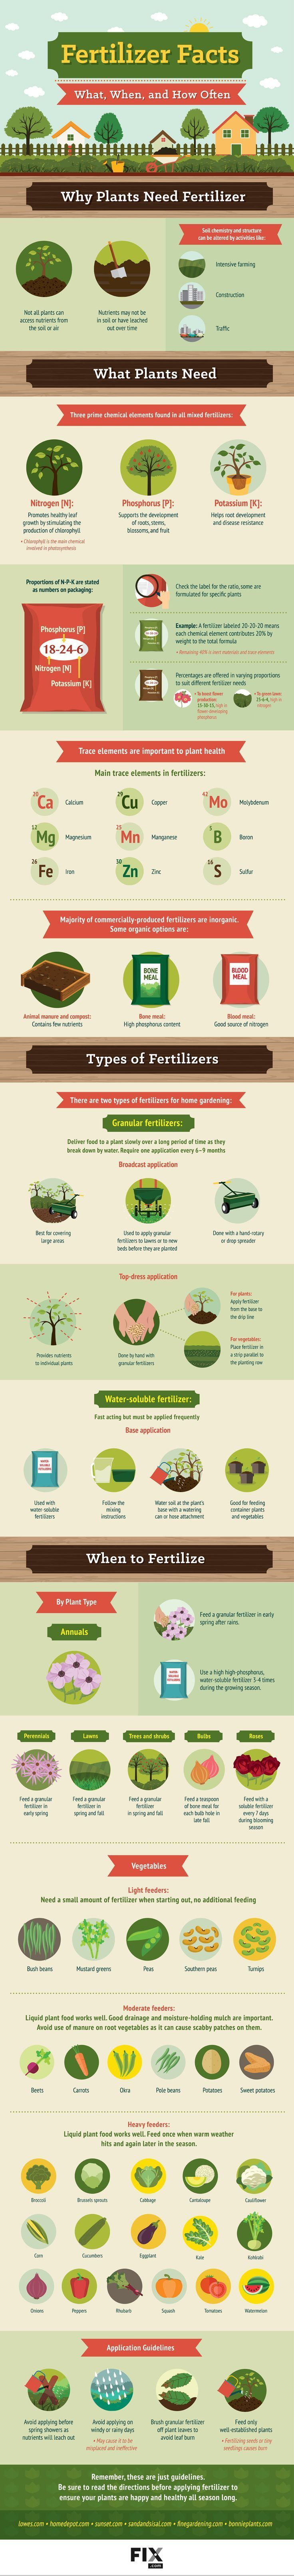 Guide to Garden Fertilizers: Taking the mystery out of N-P-K | PreparednessMama